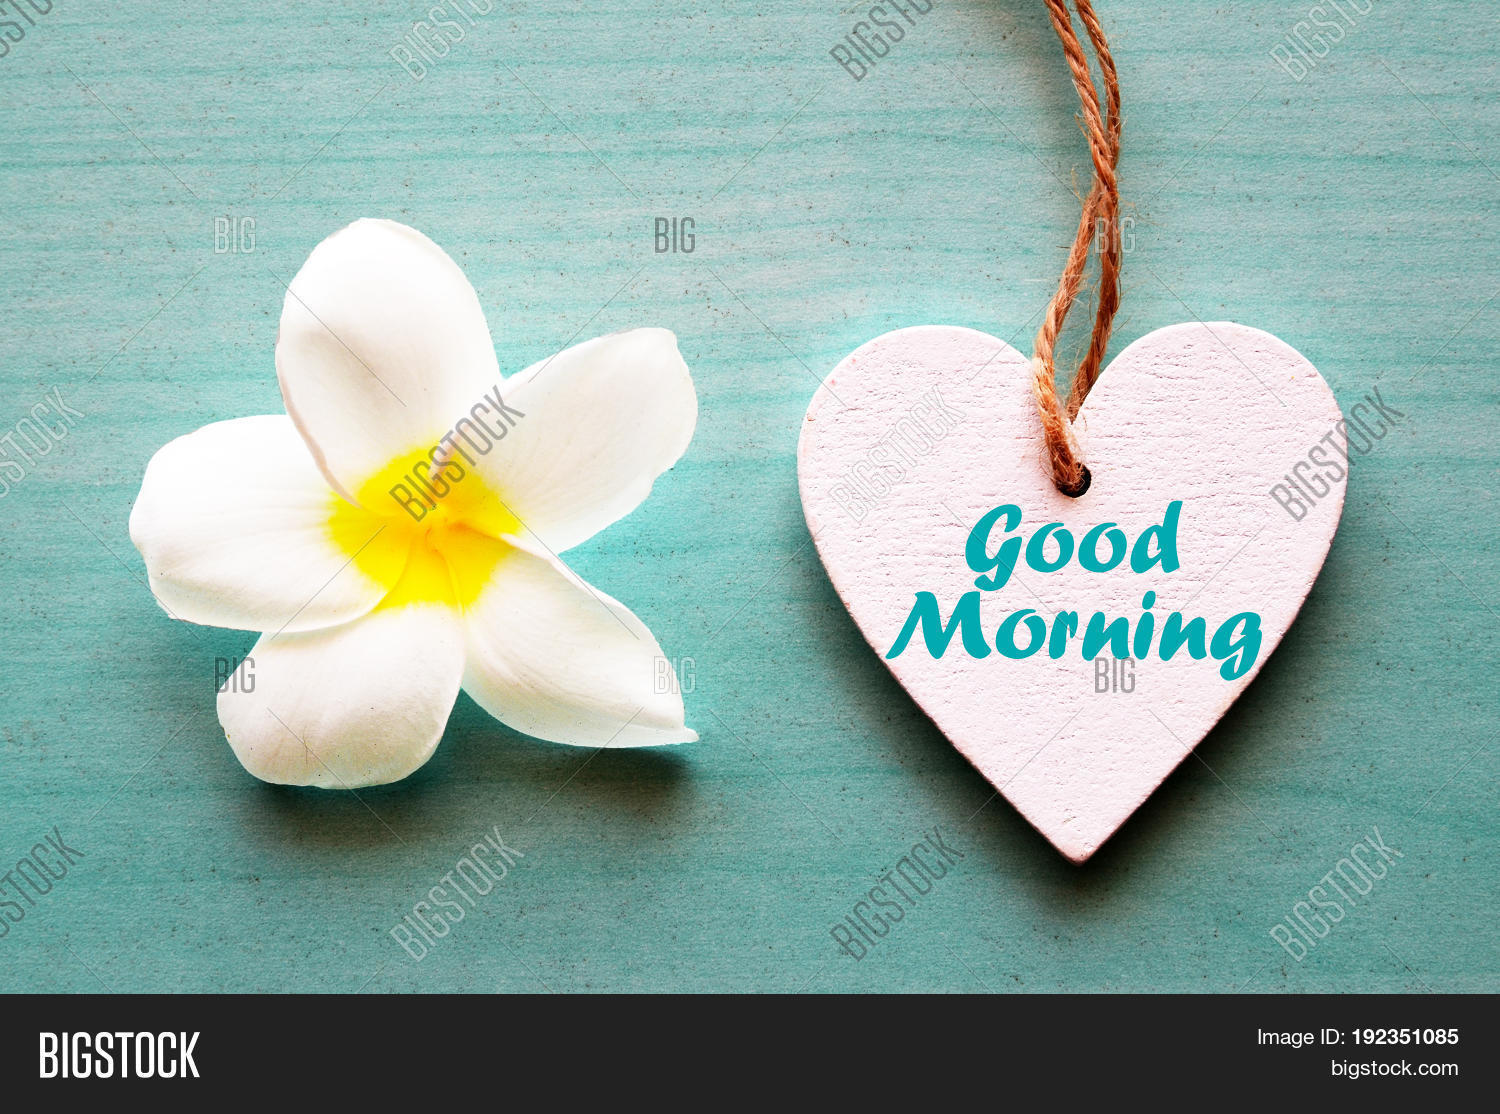 Good morning image photo free trial bigstock good morningcorative white wooden heart with frangipani flower and text good morning mightylinksfo